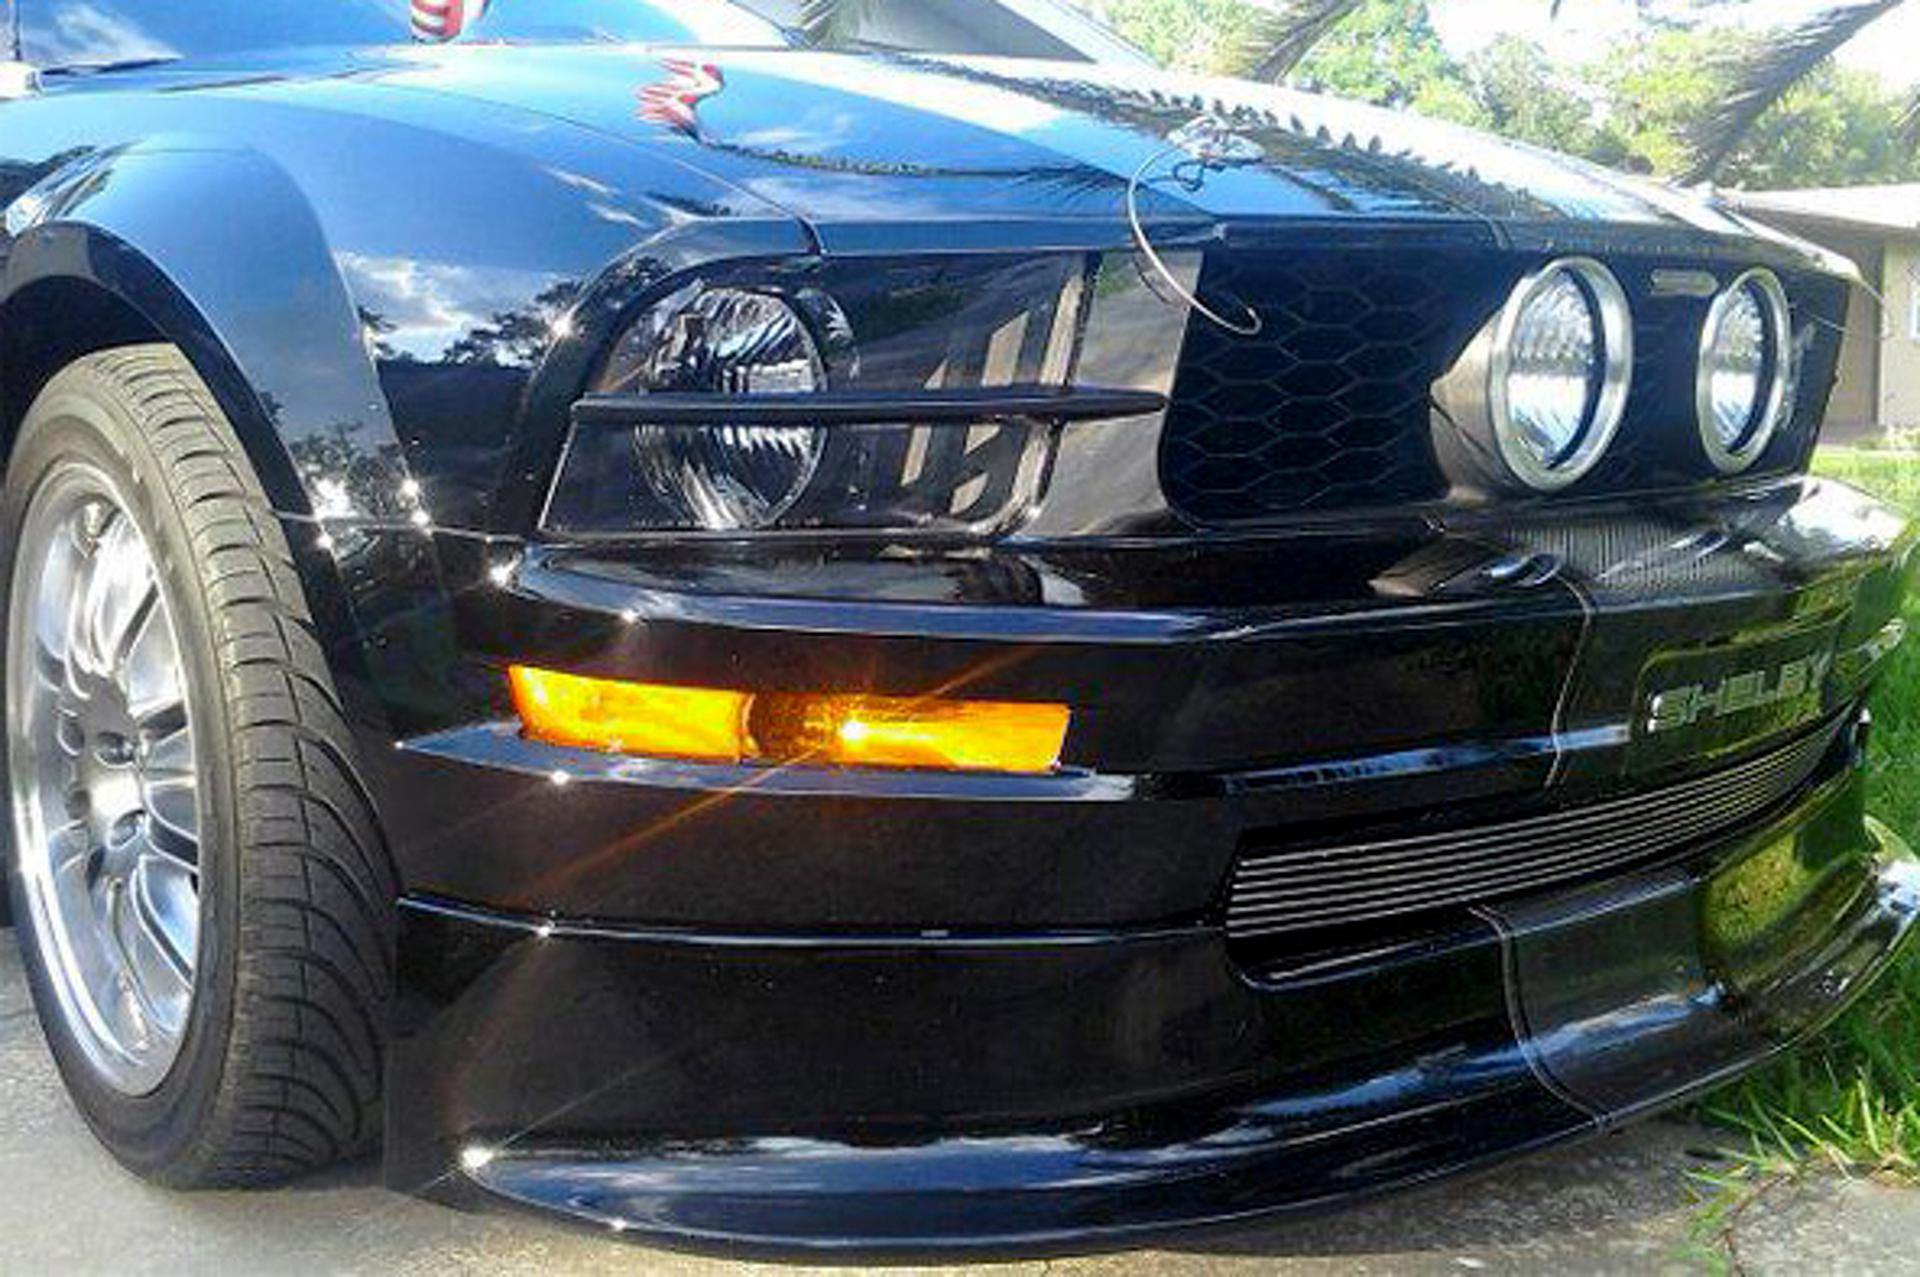 Your Ride: 2006 Ford Mustang Shelby Tribute